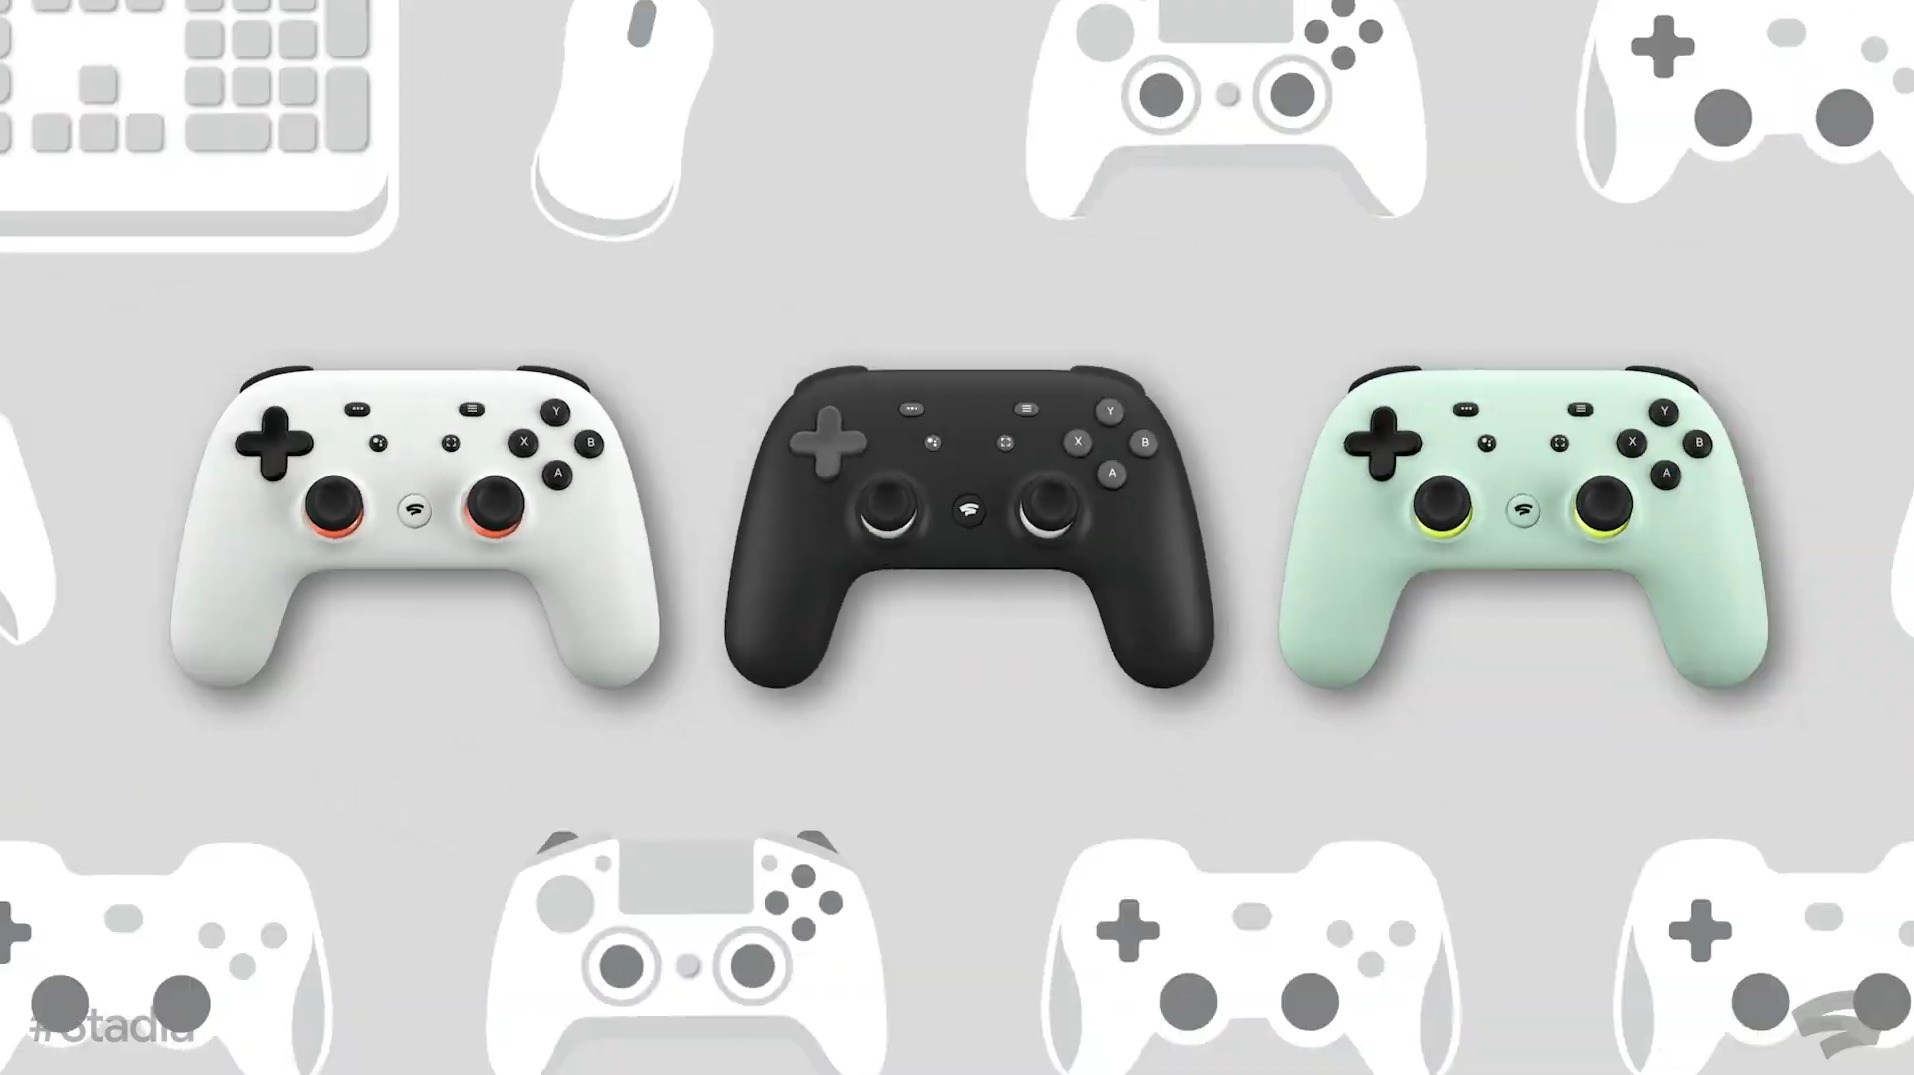 Google Stadia : attention à votre data, le service serait un monstre de consommation